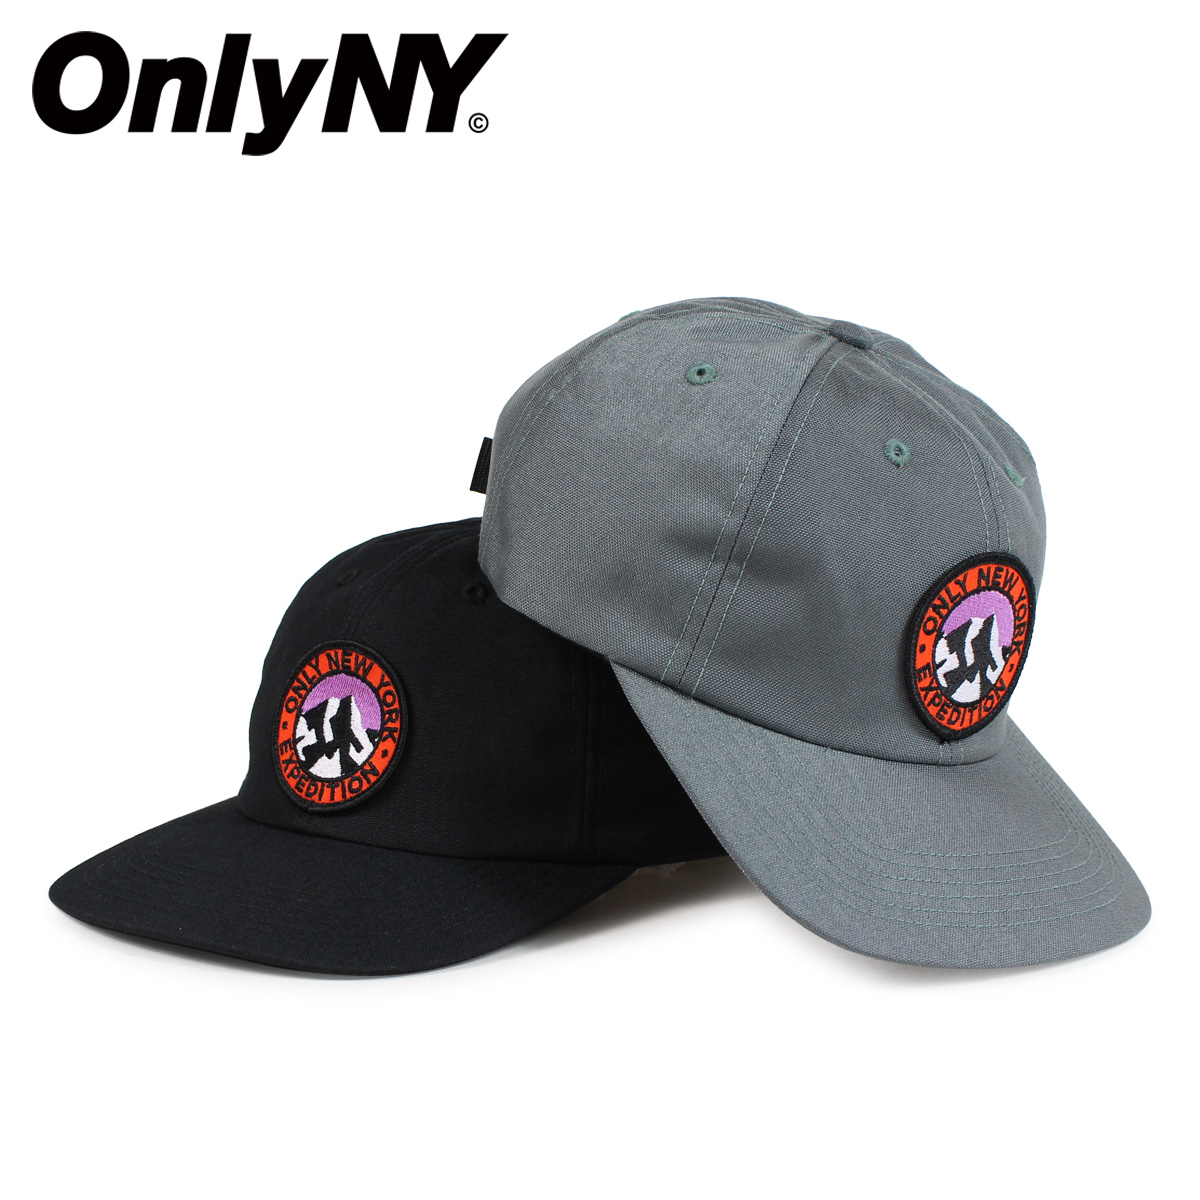 91f0e9ceab7 Only New York ONLY NY cap hat men gap Dis nylon EXPEDITION CORDURA HAT  black black ...